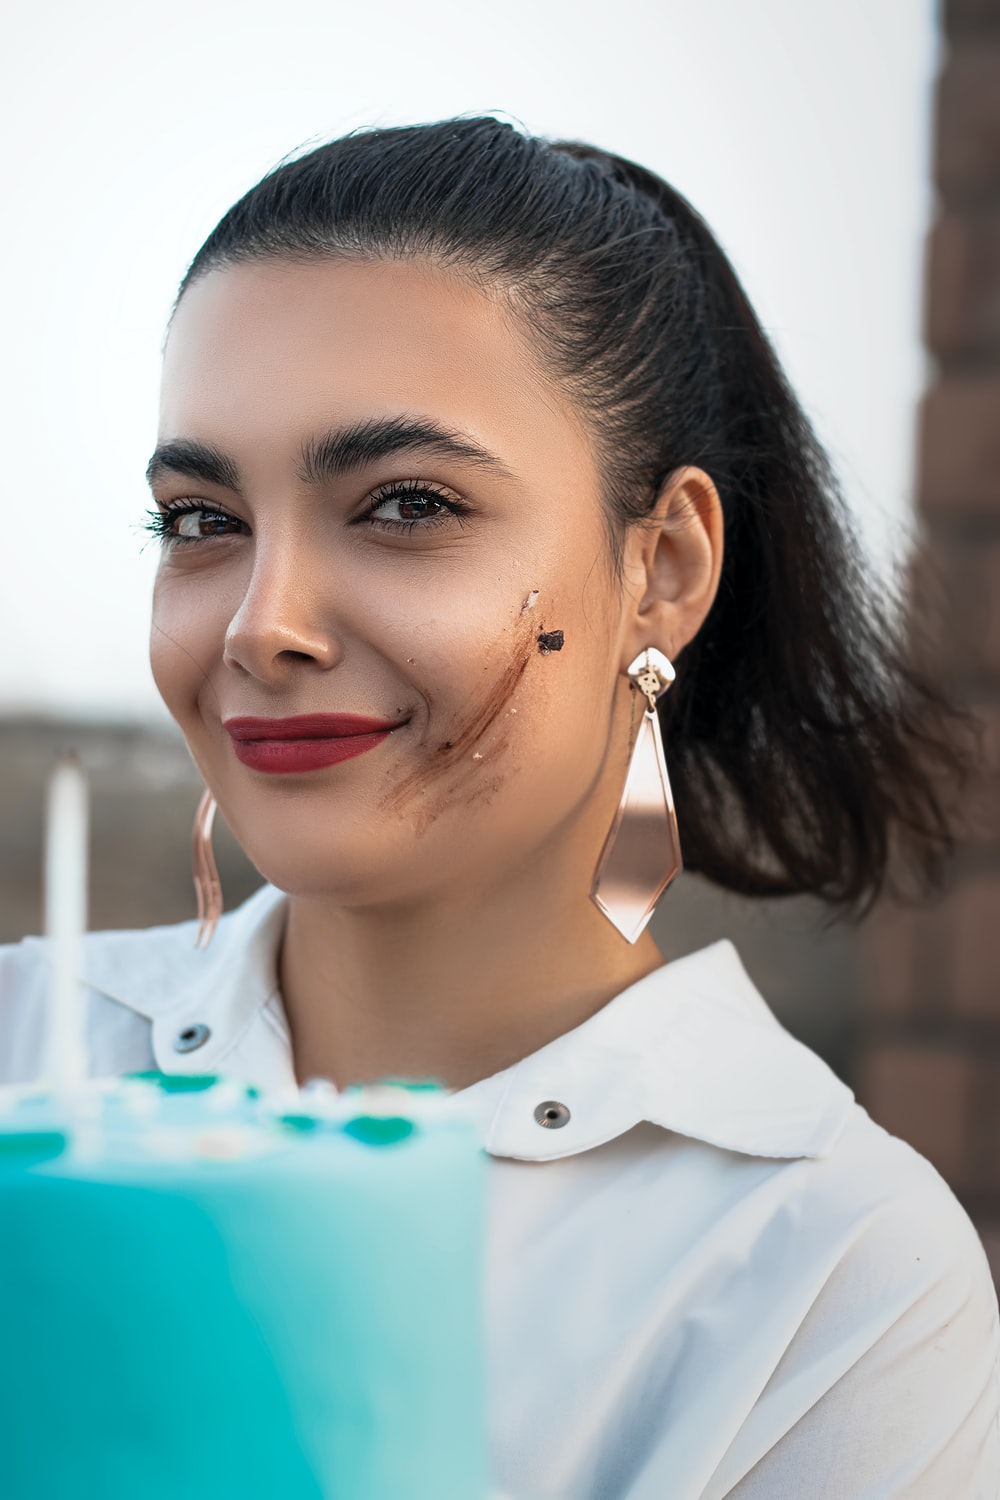 woman in white collared shirt with silver earrings